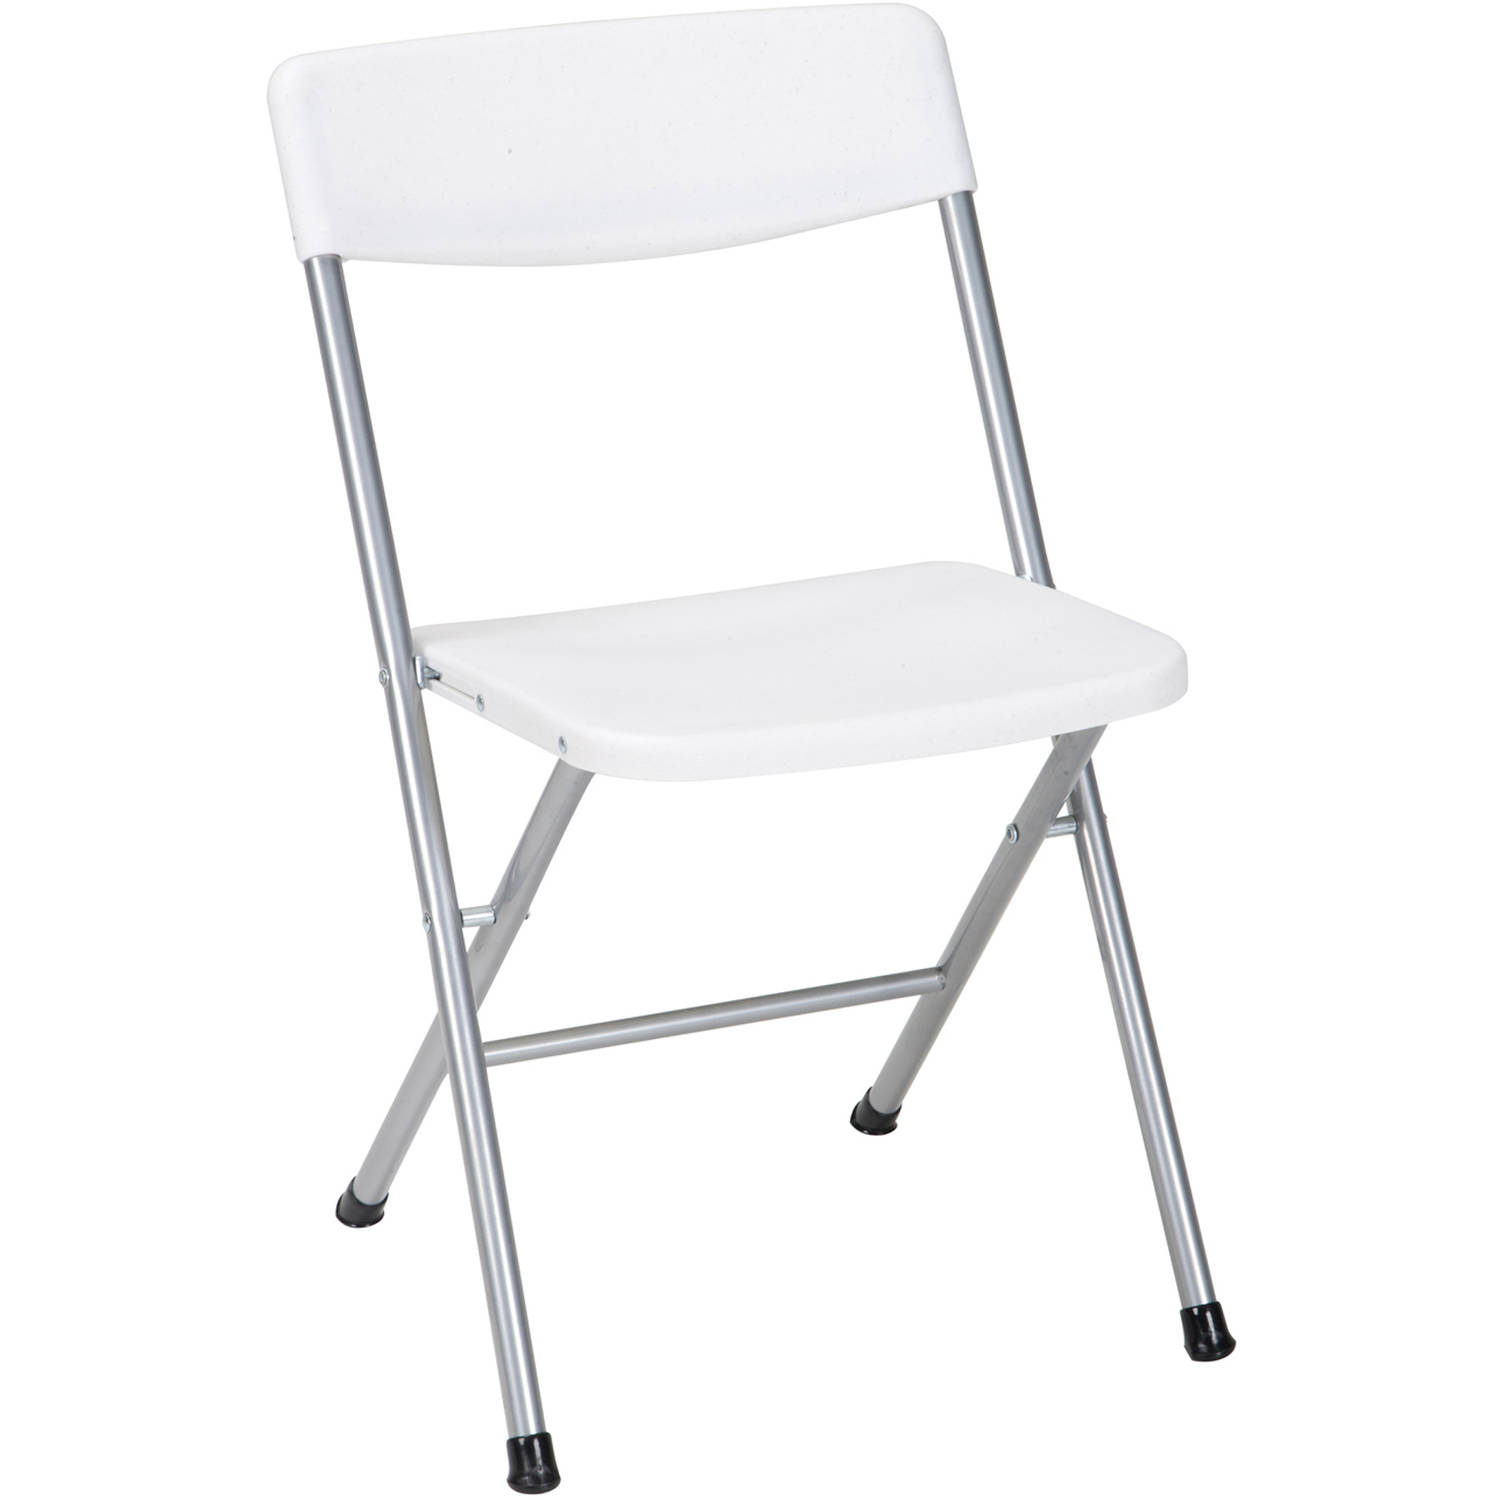 plastic resin chairs computer desk and chair mainstays white walmart com